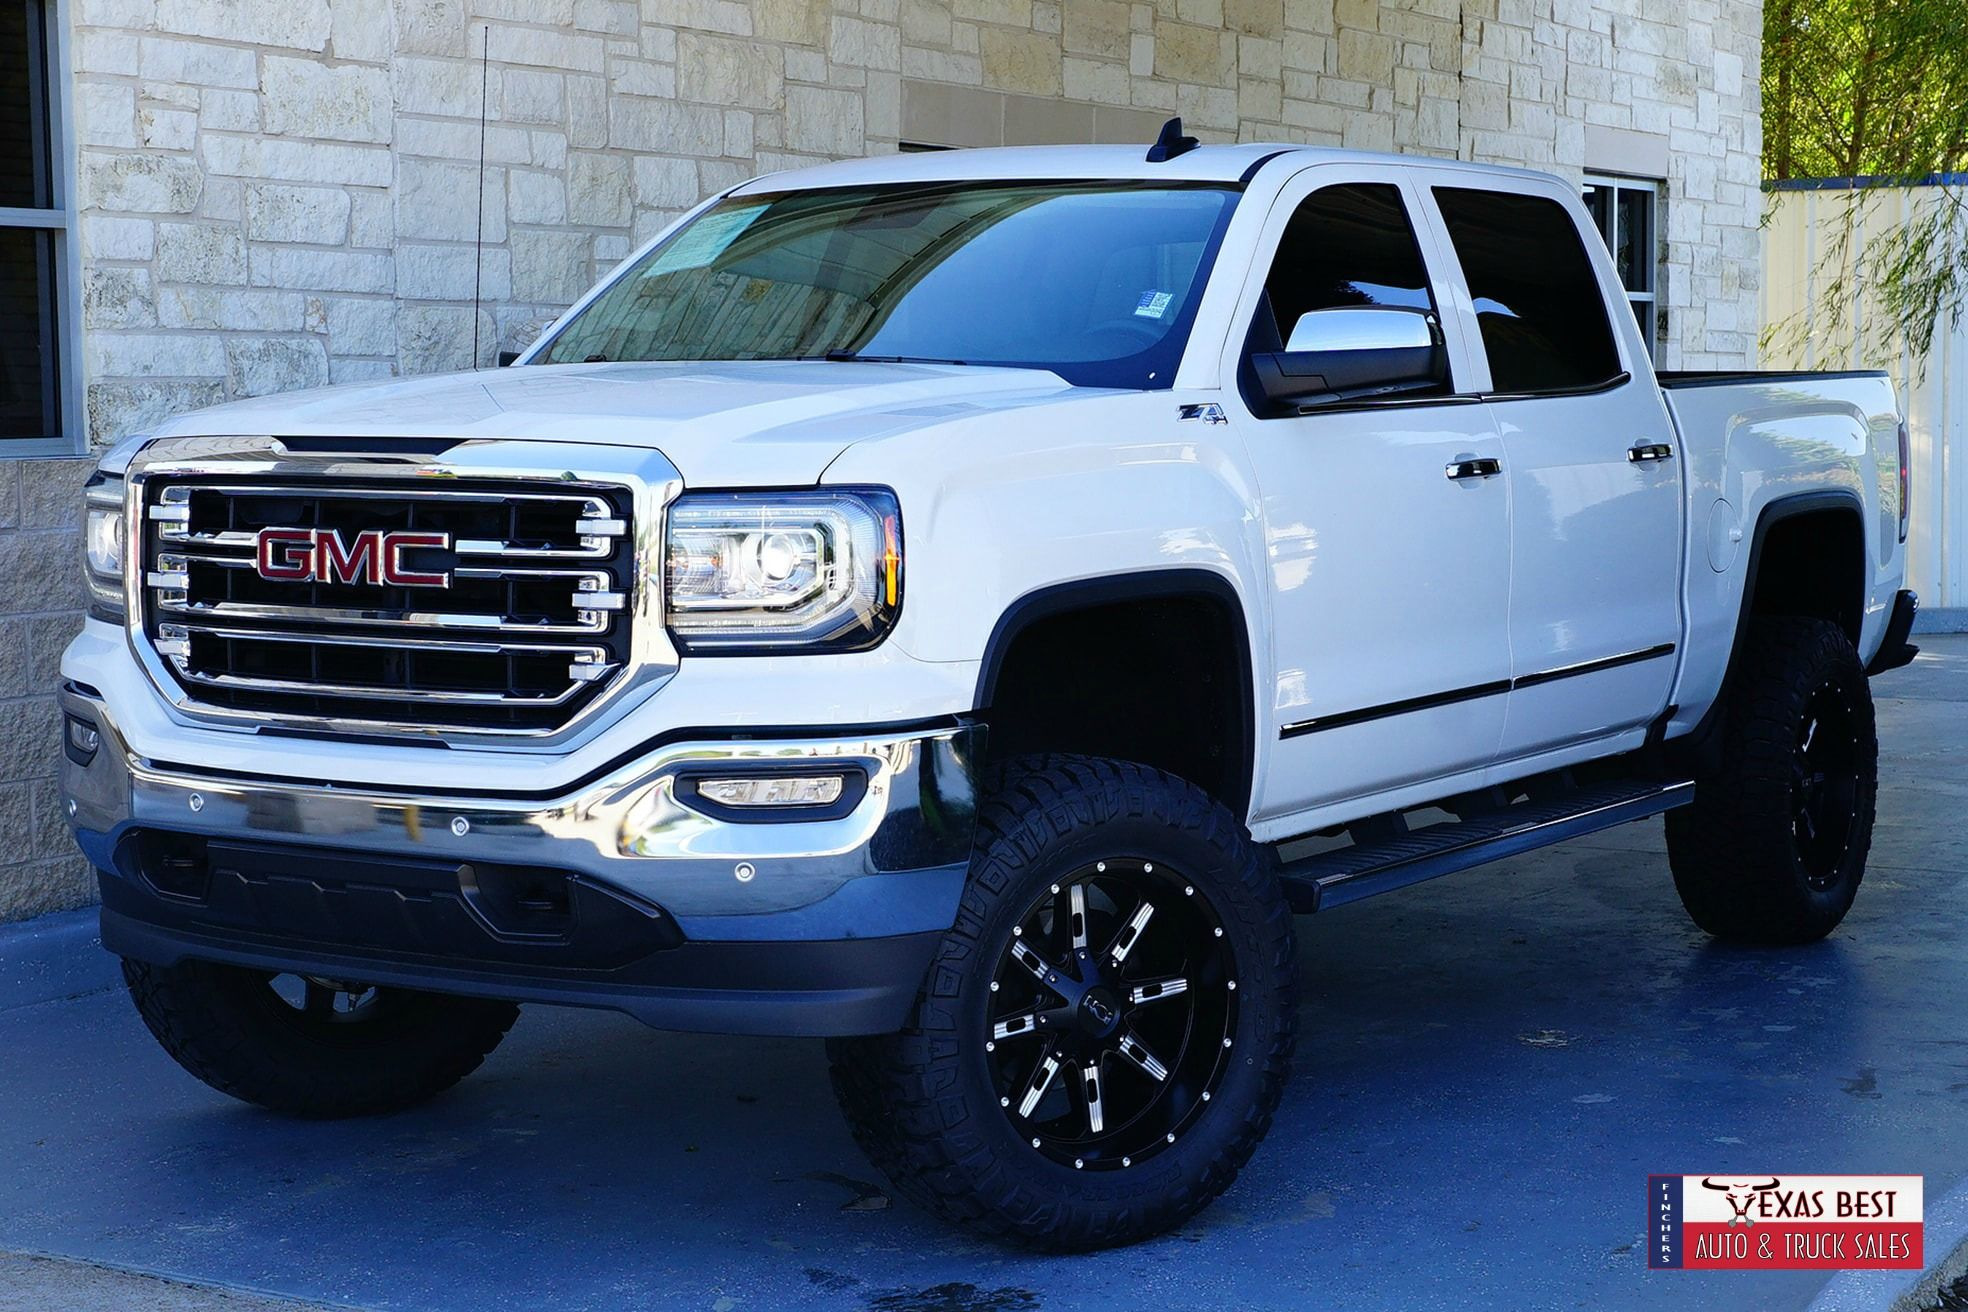 Brand New Lift Wheels And Tires 2018 Gmc Sierra 1500 Slt For Sale At Fincher S Texas Best Located In Tomball Tx Call Now F Gmc Sierra 1500 Gmc Sierra Gmc